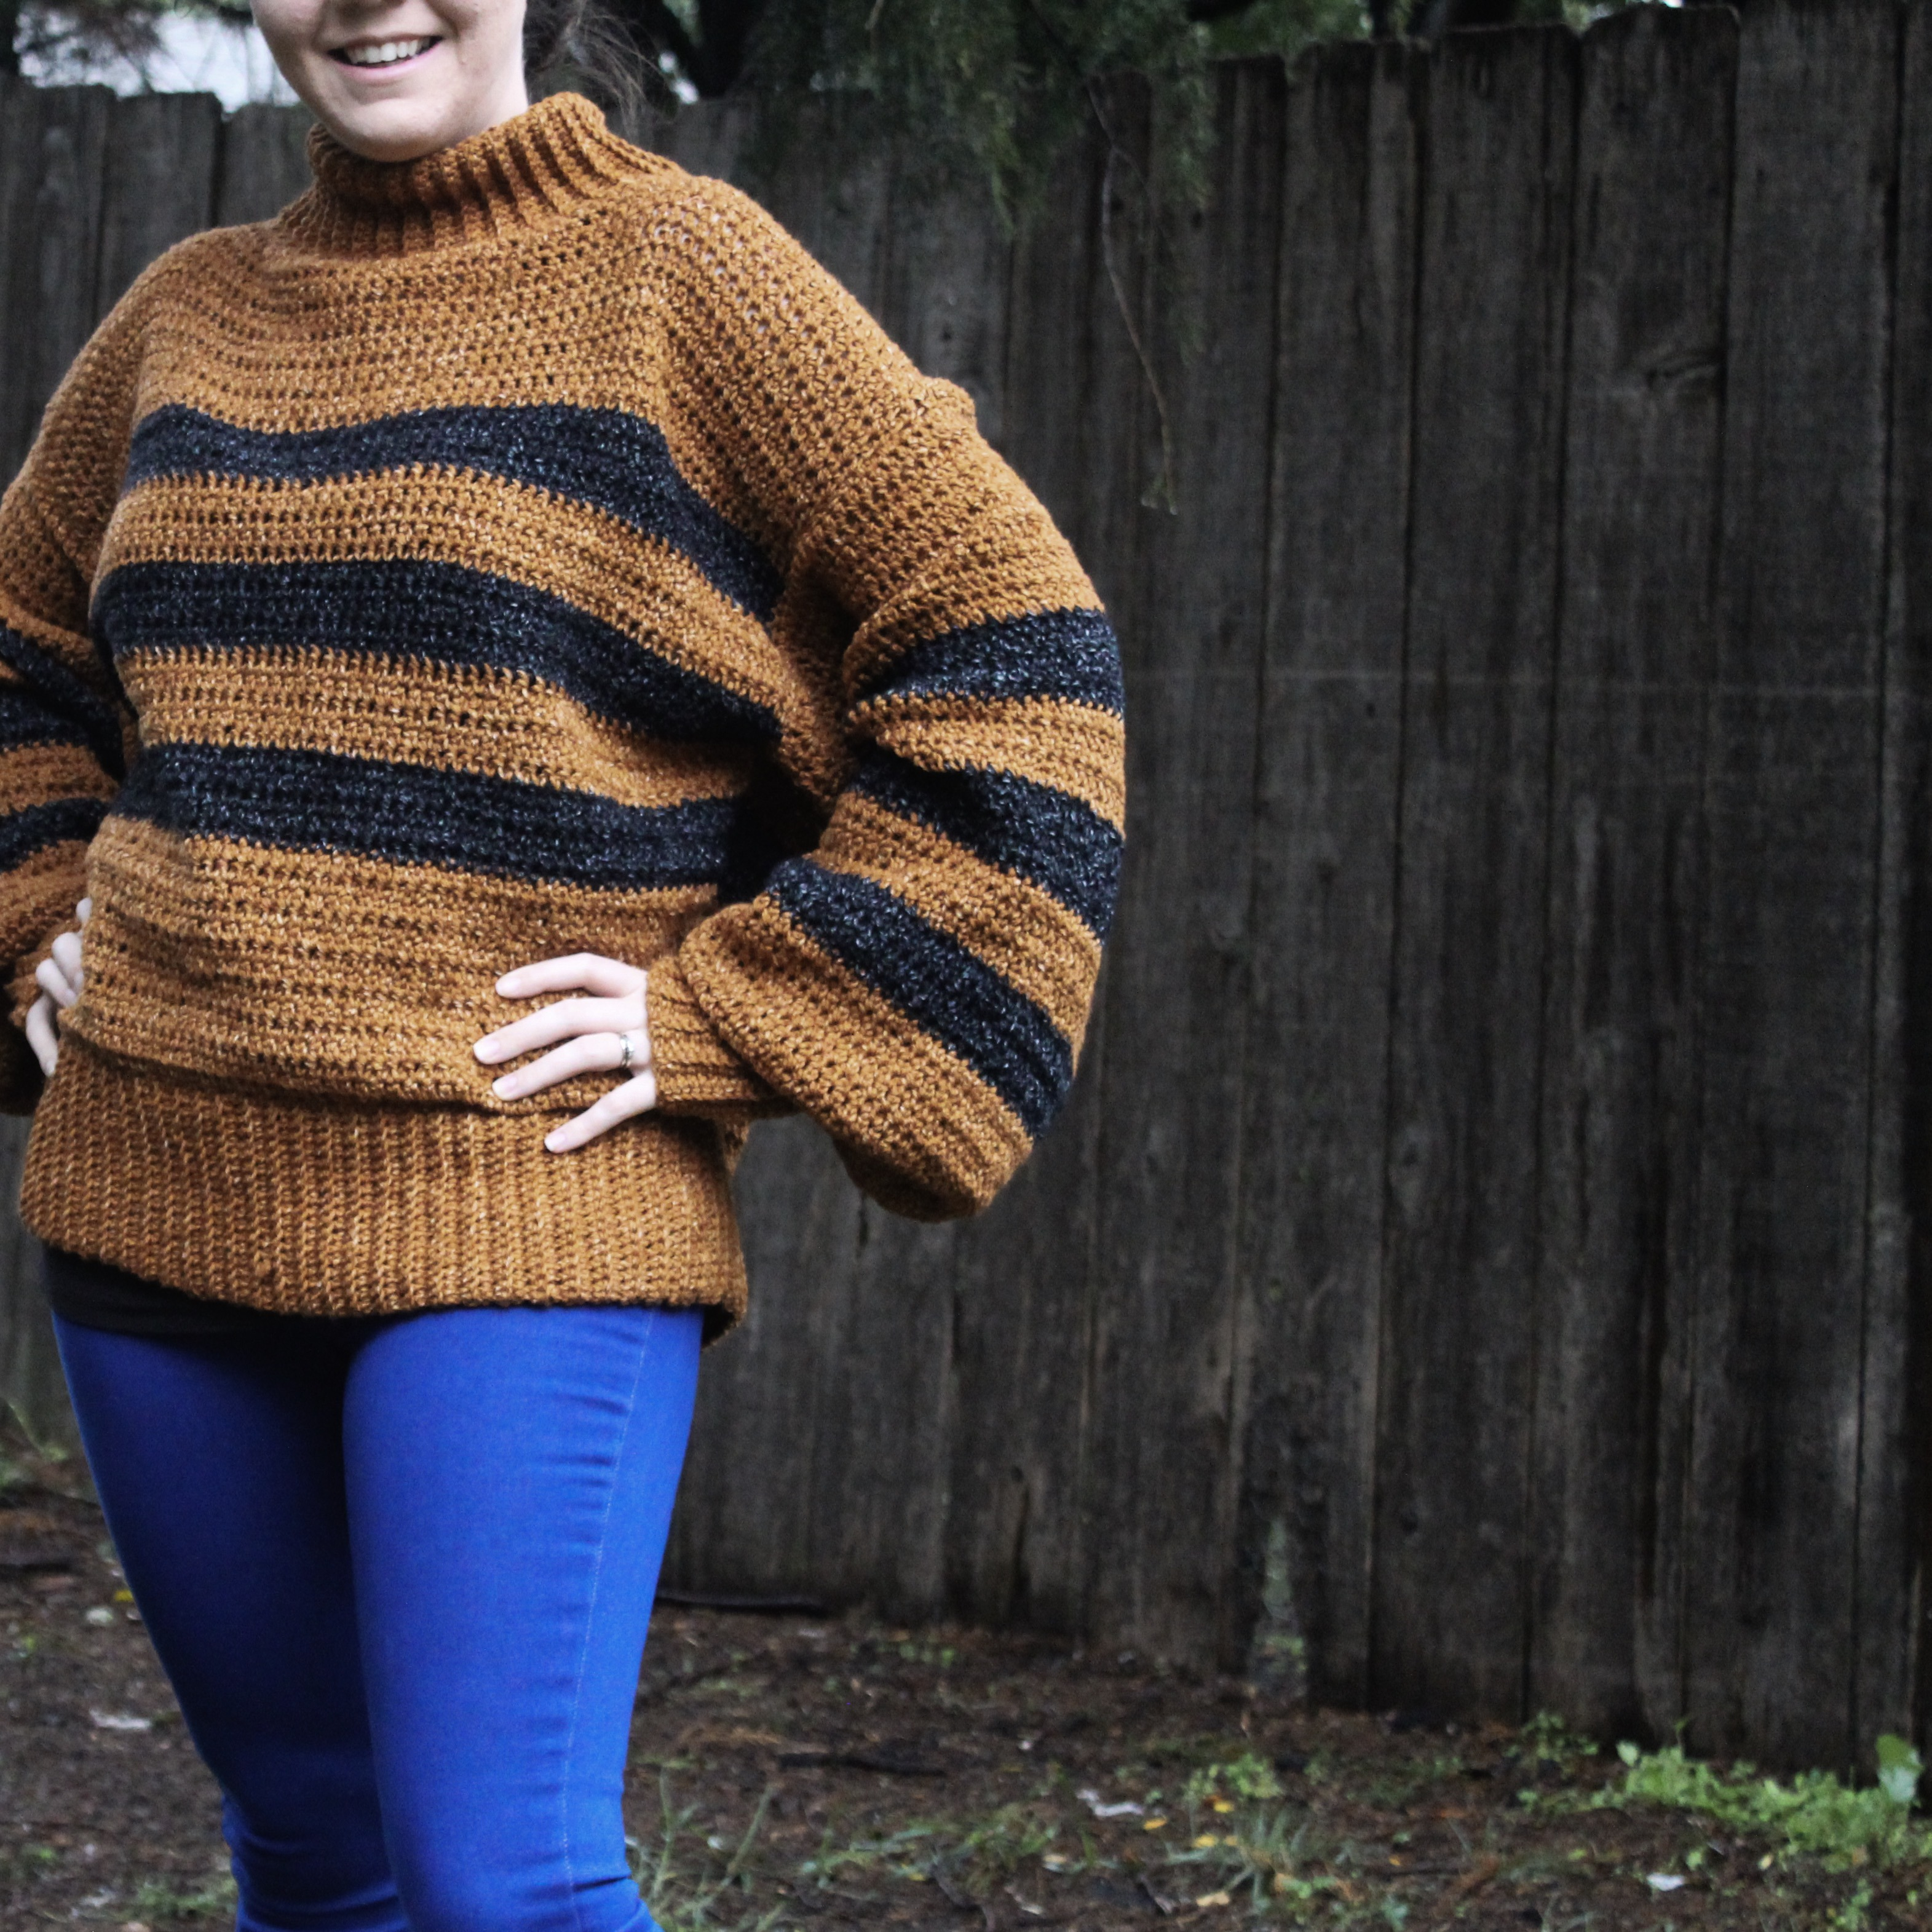 Make This Cozy Calico Sweater With This Pattern!